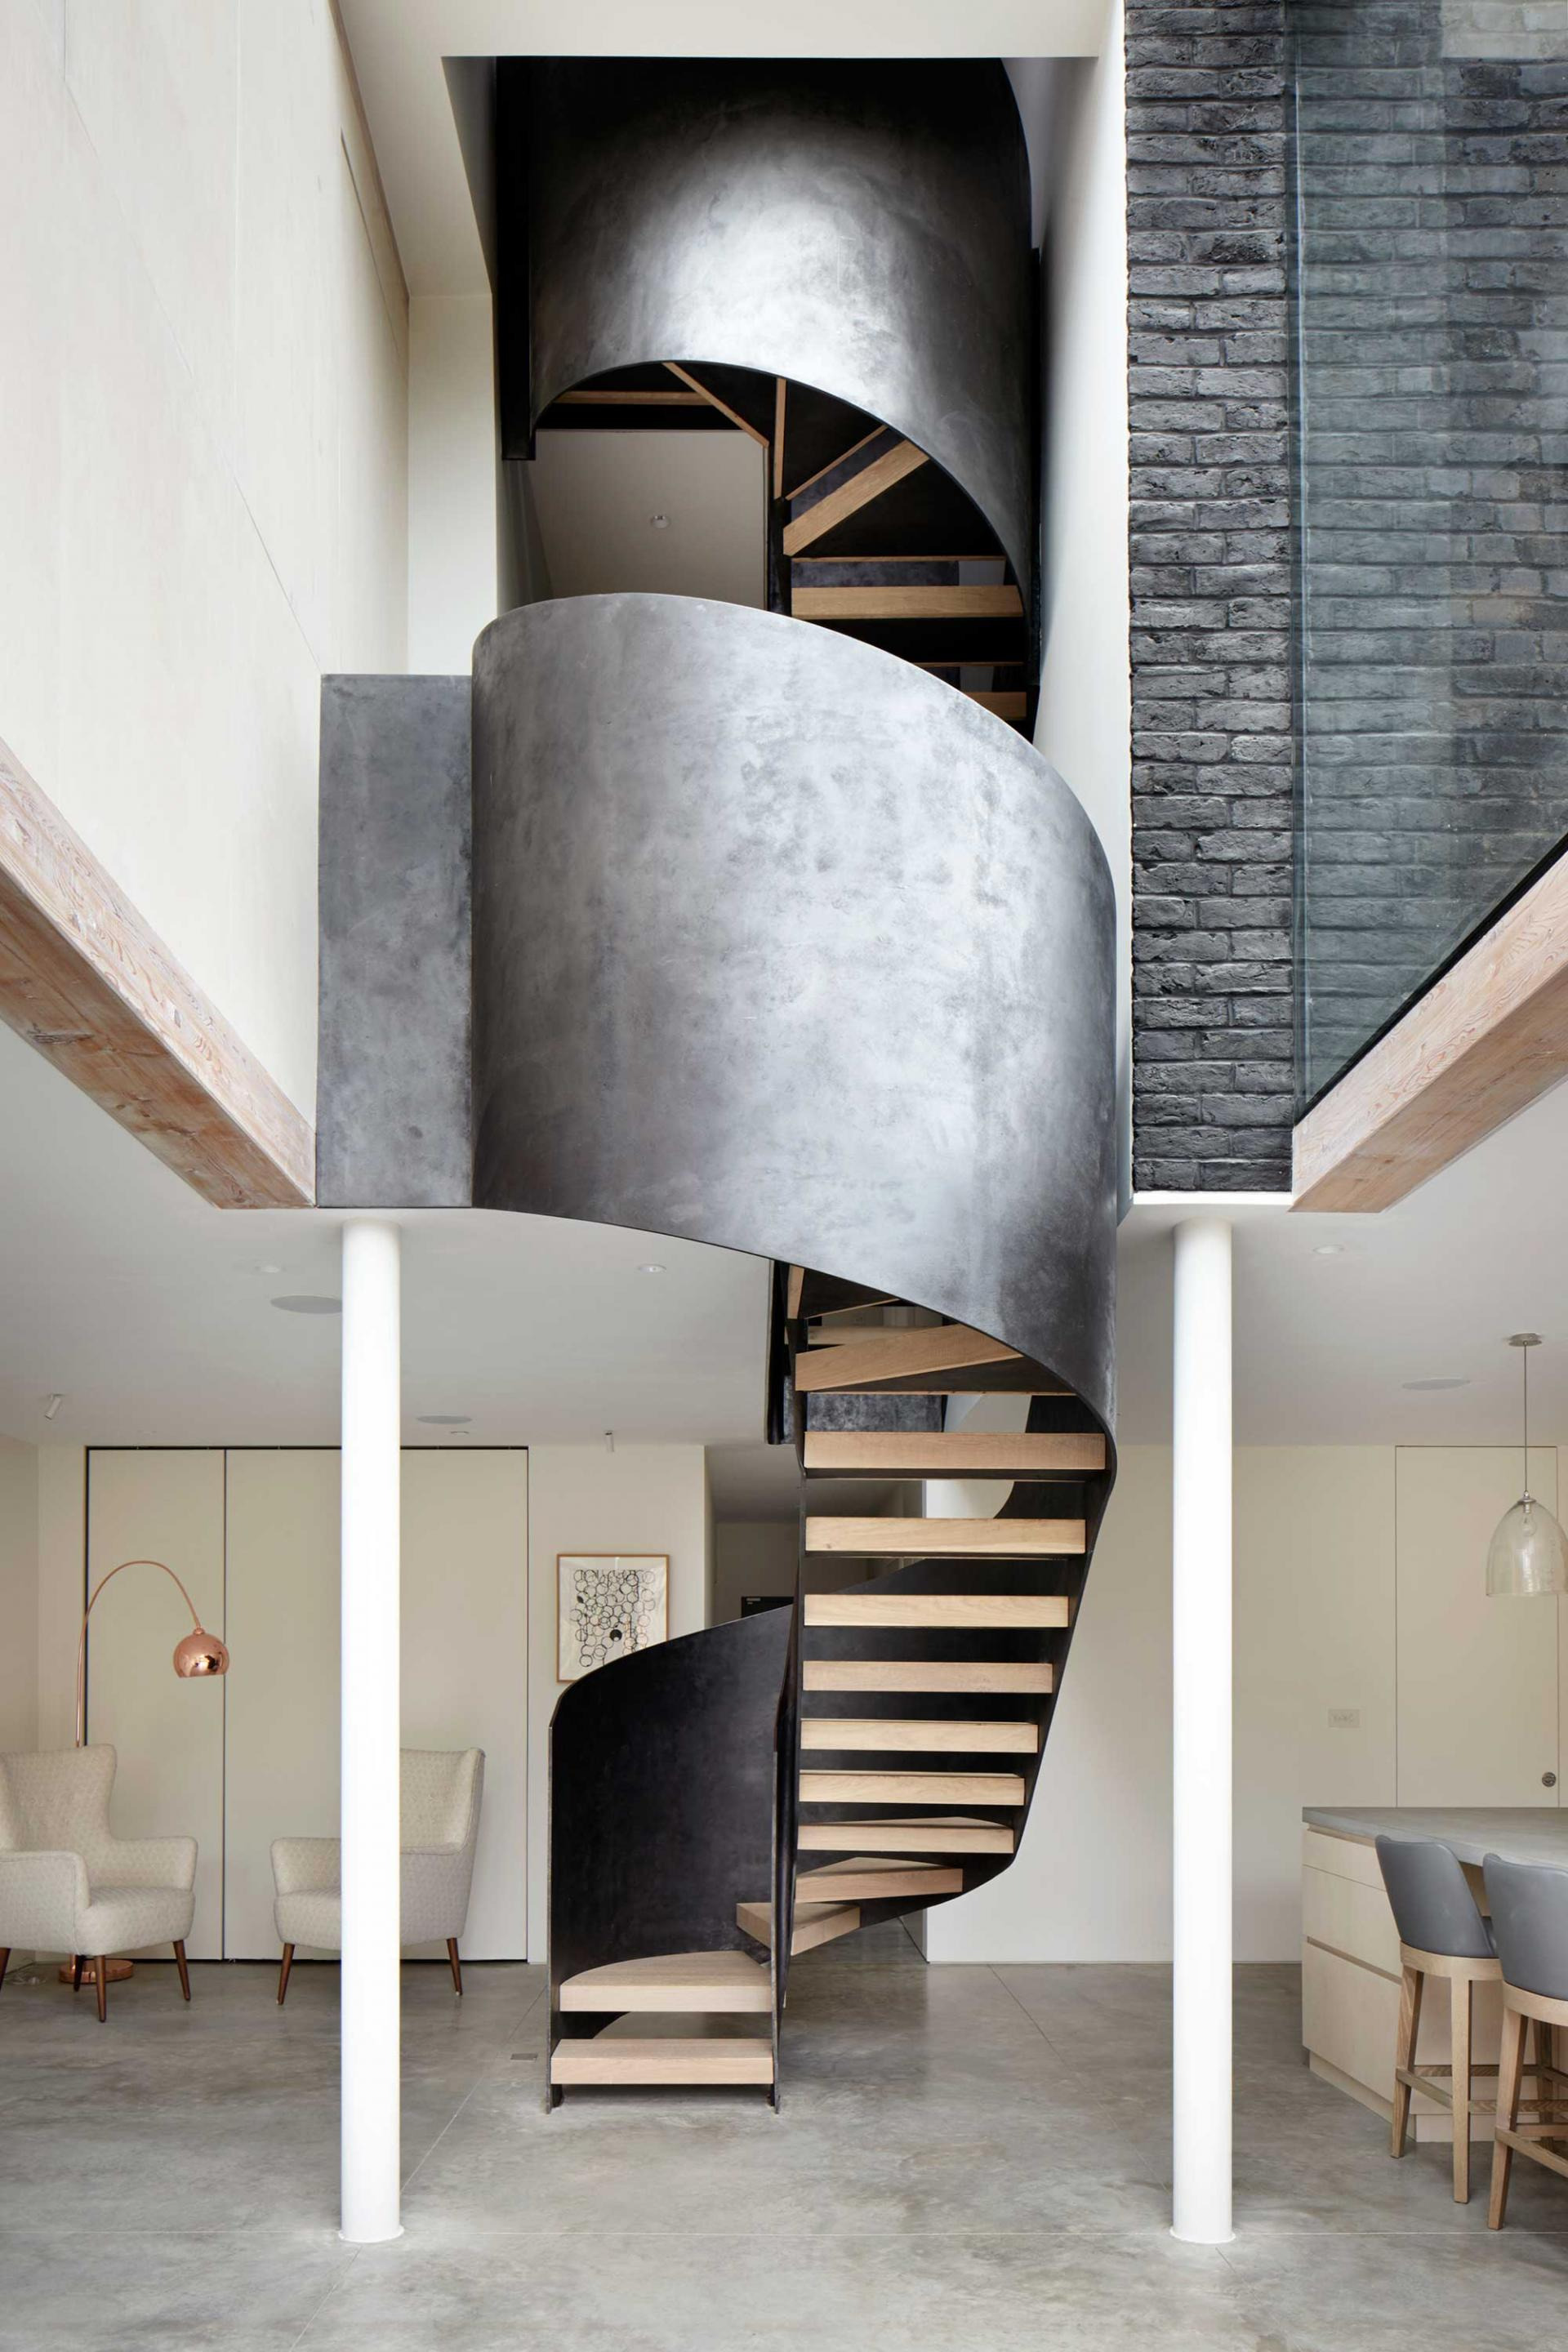 statement staircases de beauvoir house hackney